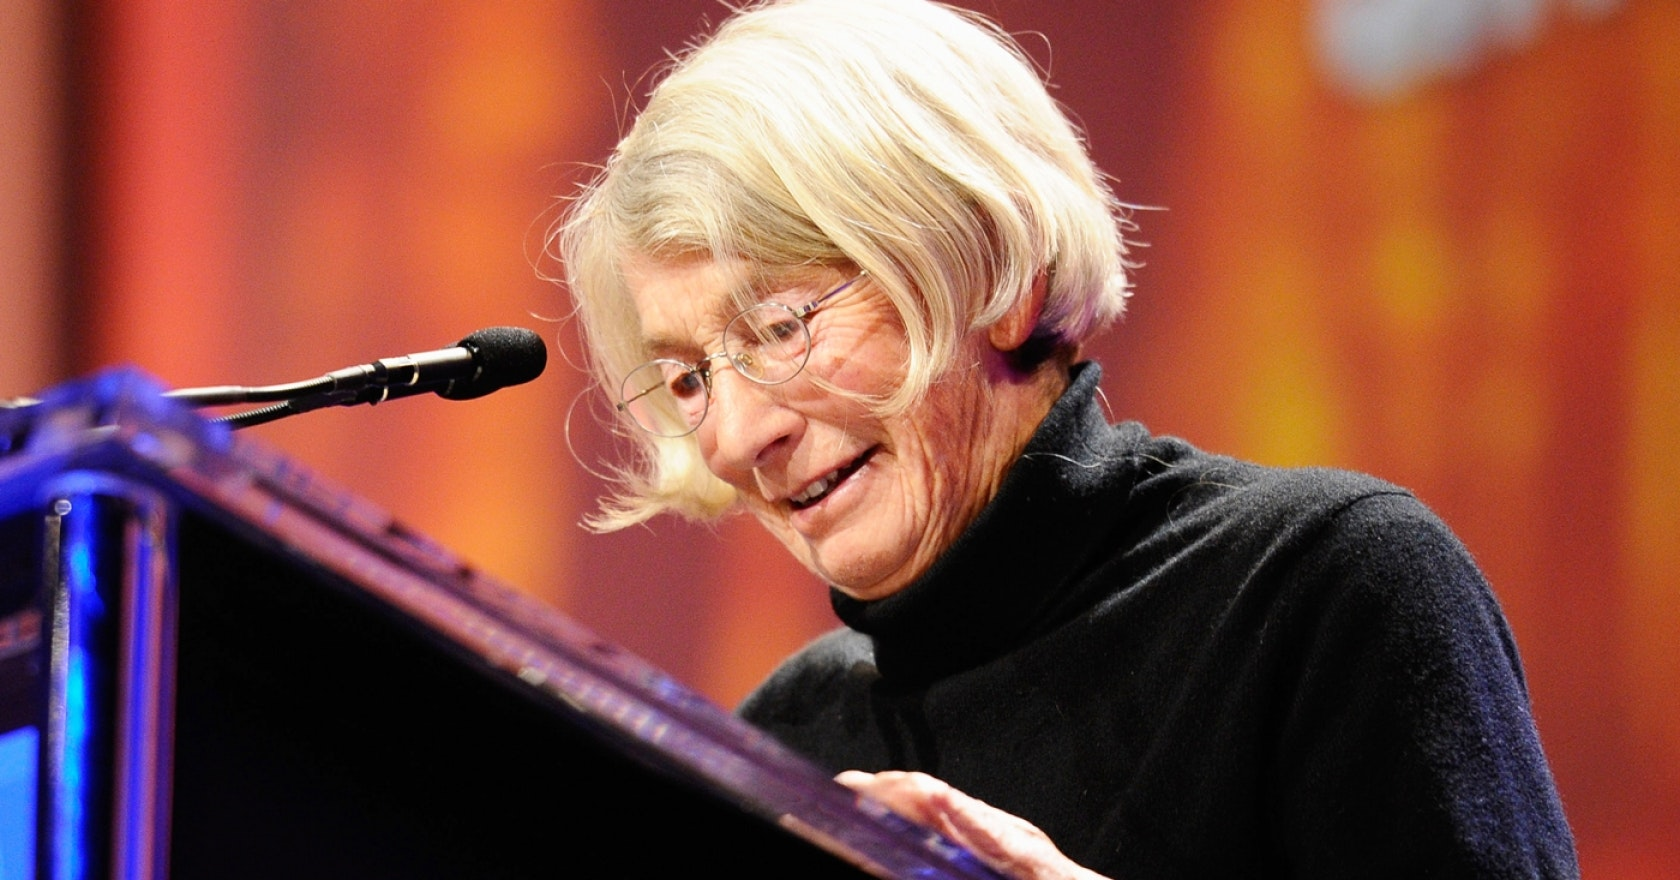 8 important life lessons we can learn from poet Mary Oliver